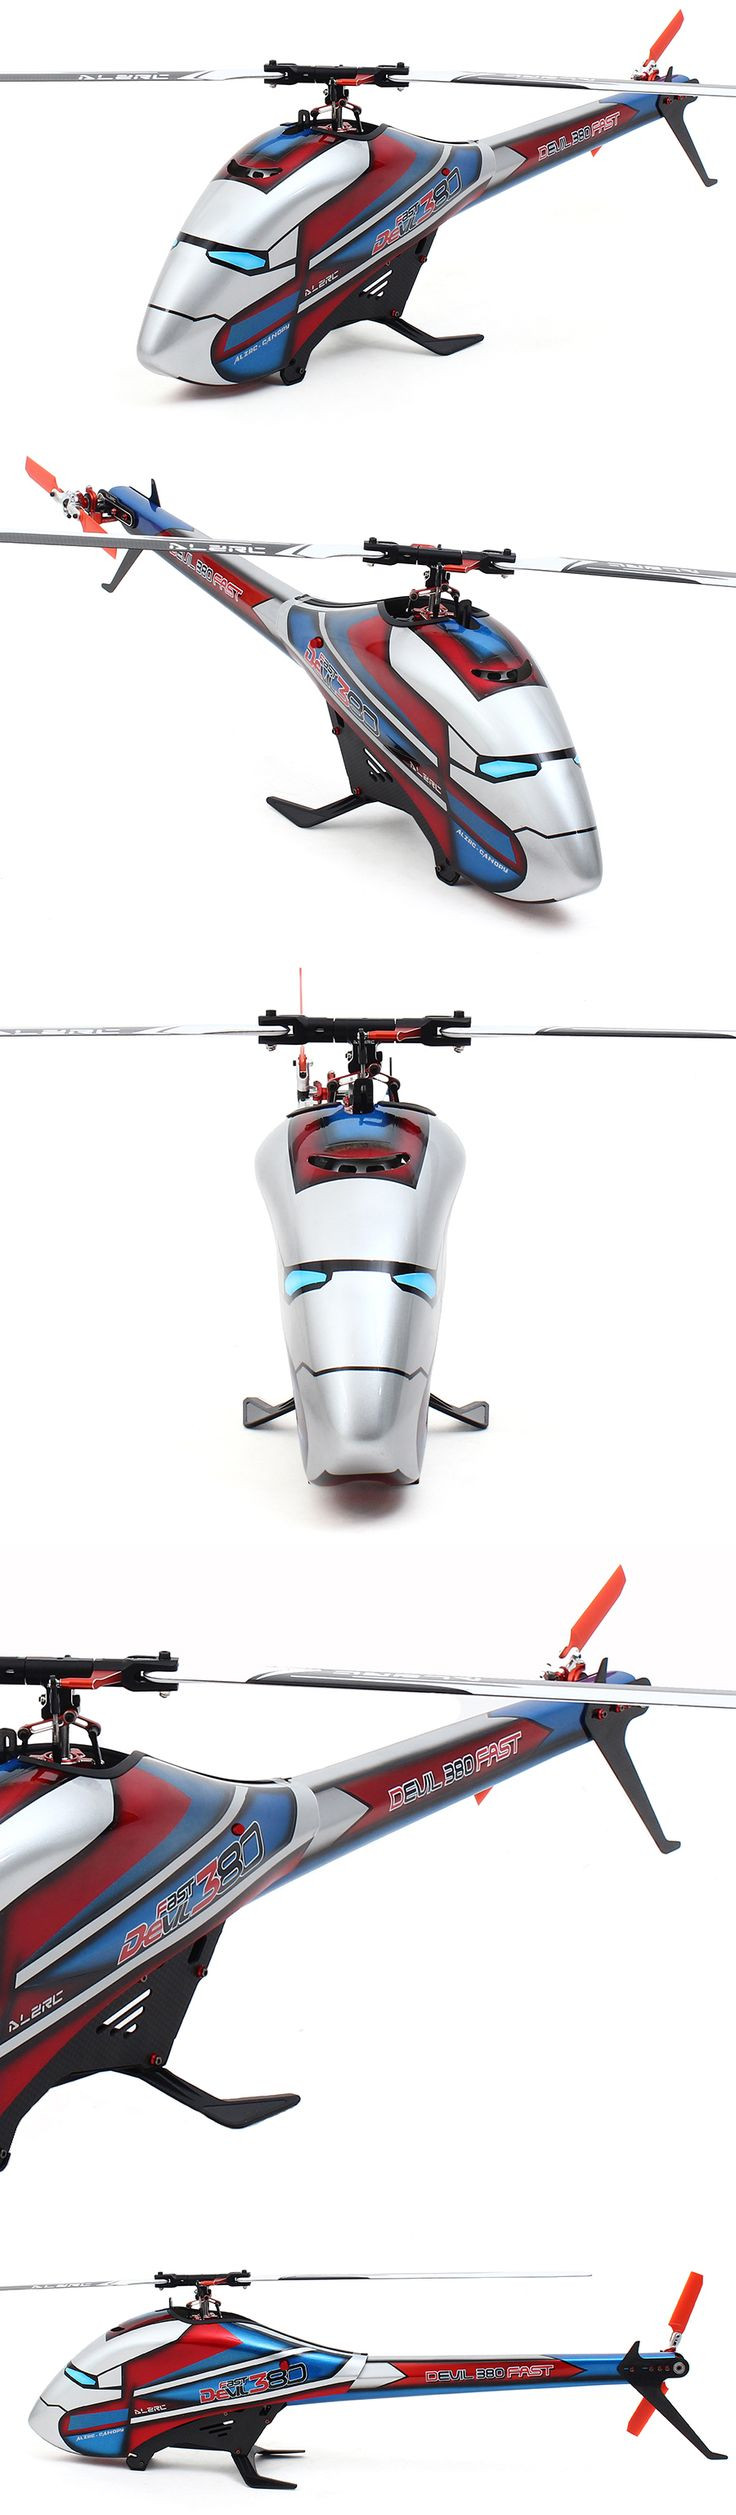 US Warehouse | ALZRC Devil 380 FAST RC Helicopter Kit